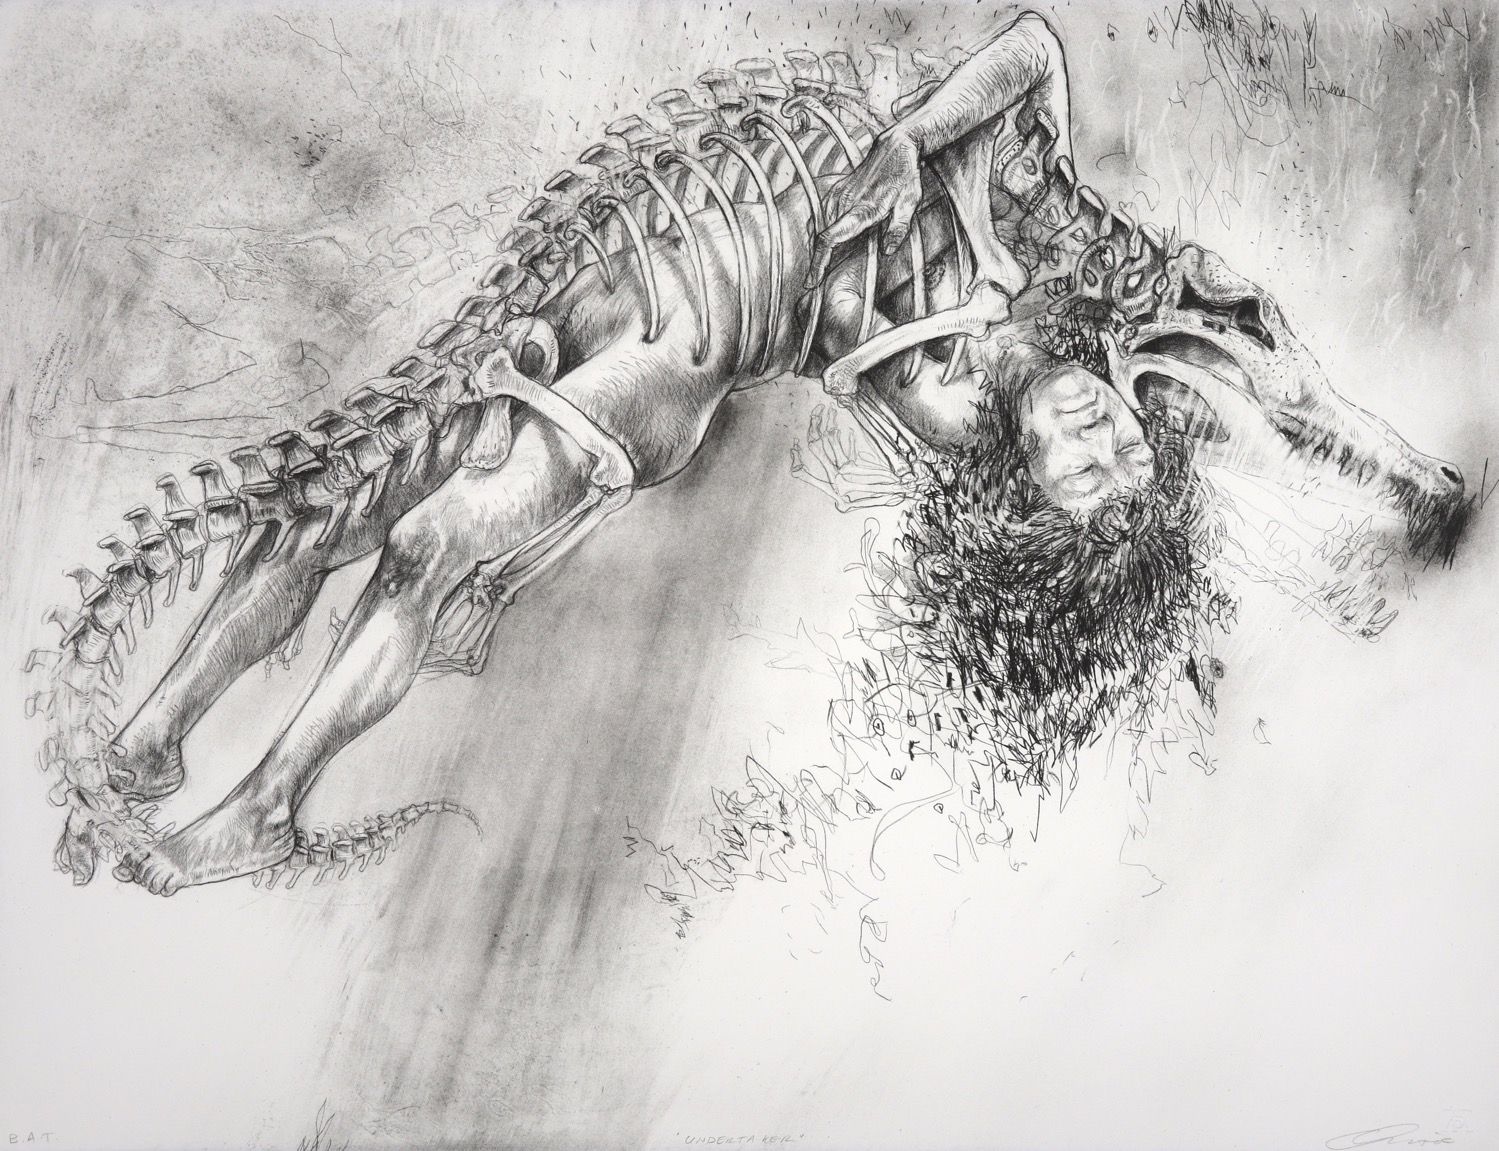 Crocodile skeleton drawn to mesh with the figure of a naked young woman.